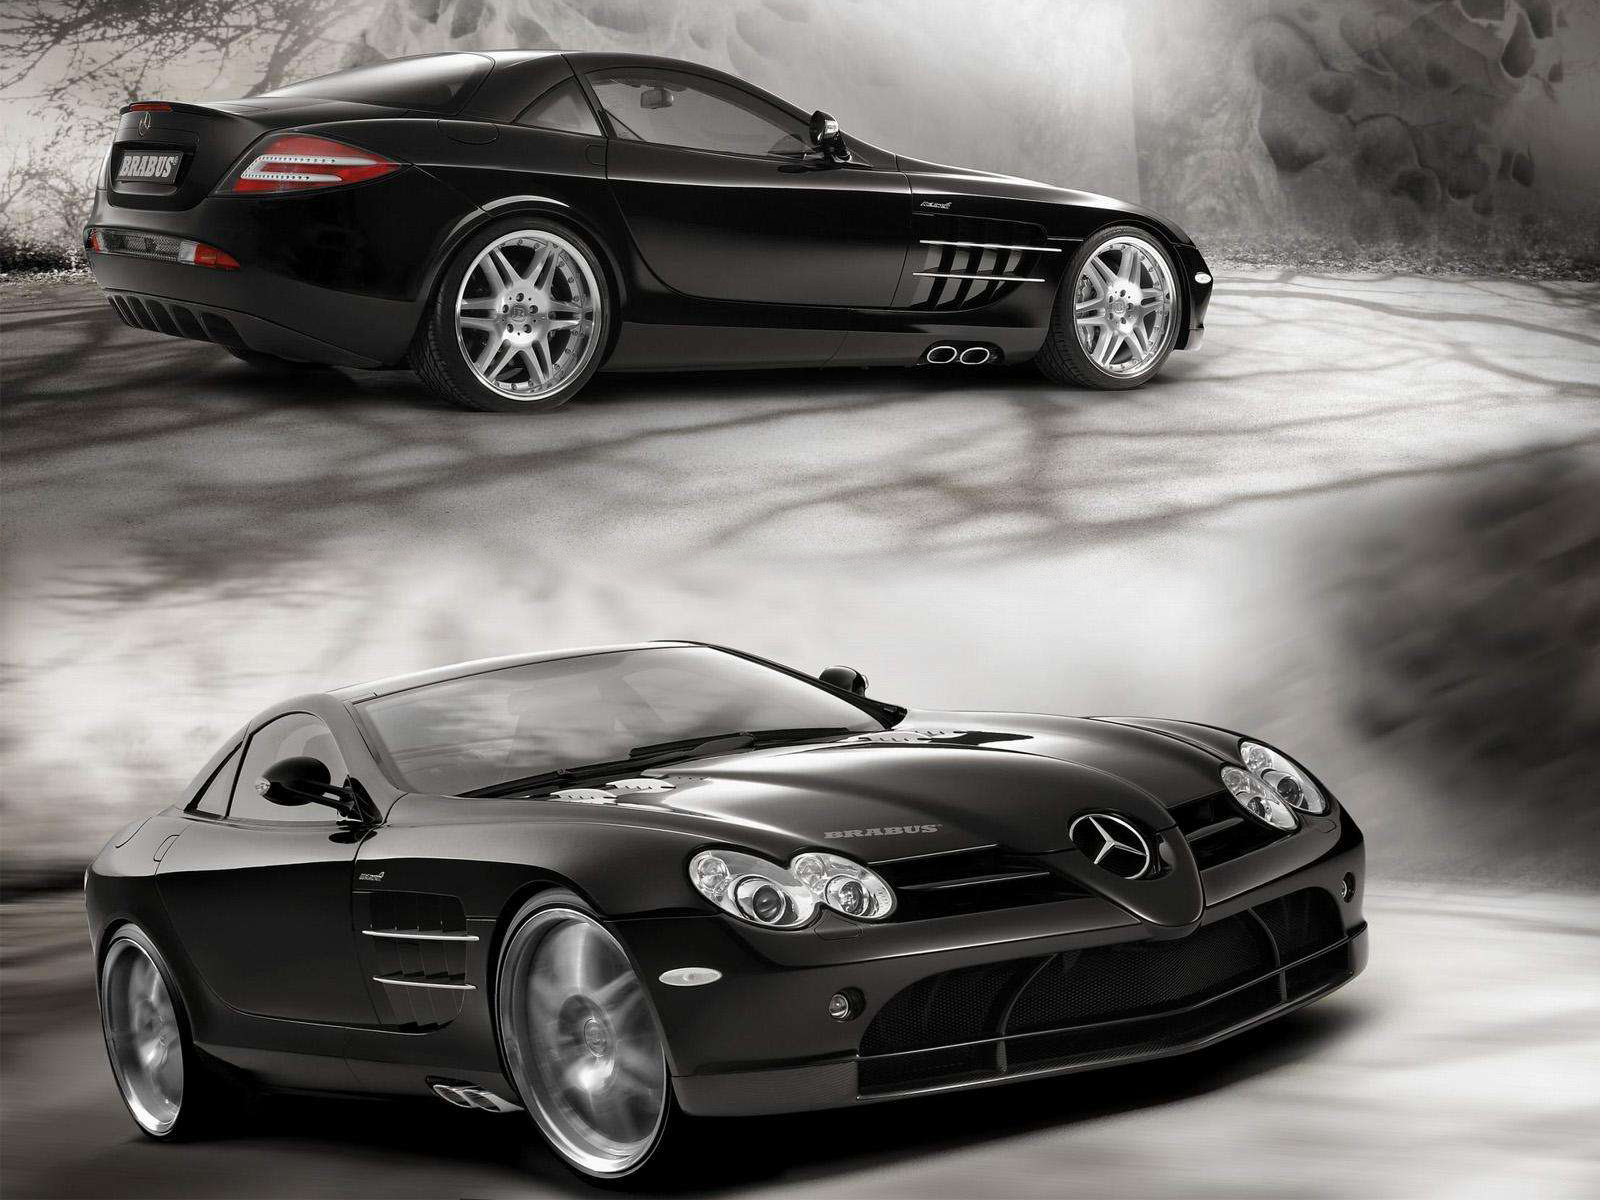 World Of Cars: Mercedes benz slr